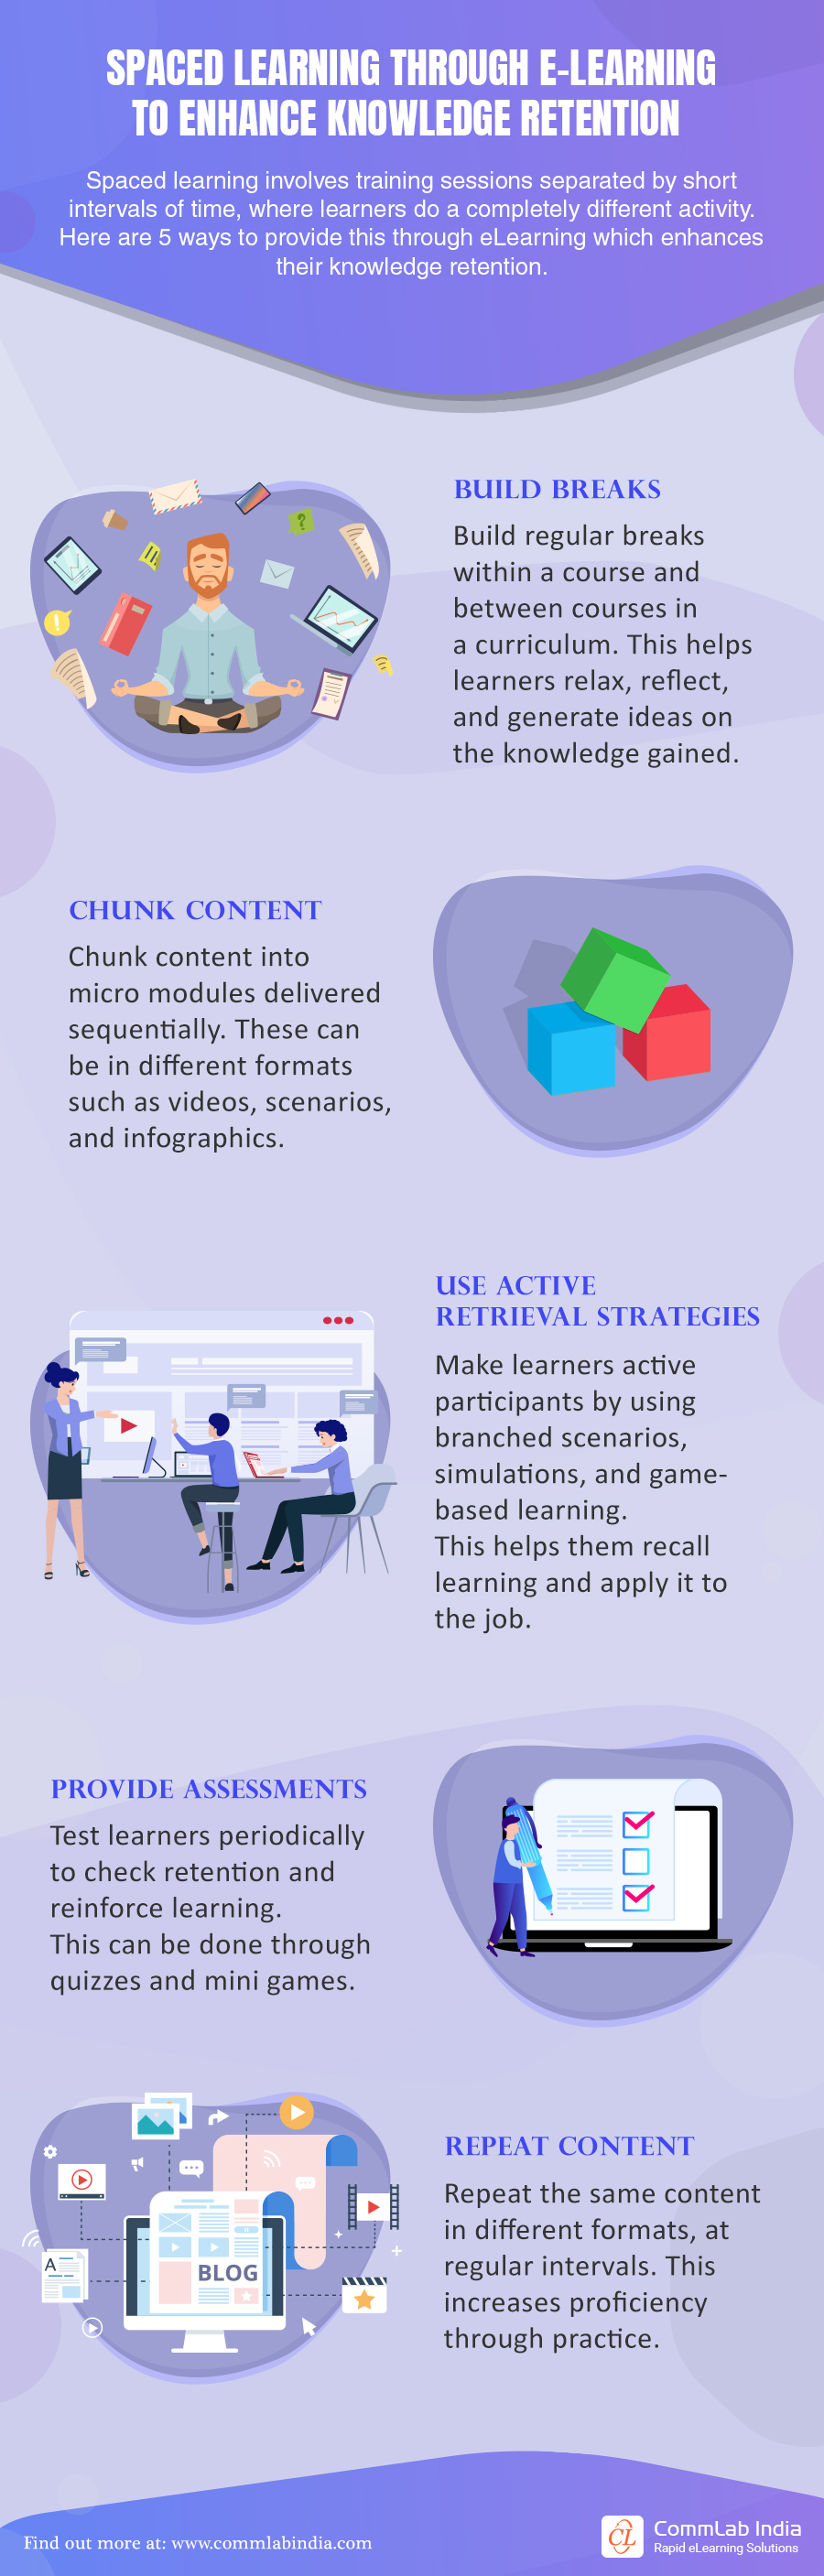 5 Effective Ways to Incorporate Spaced Learning in E-Learning [Infographic]